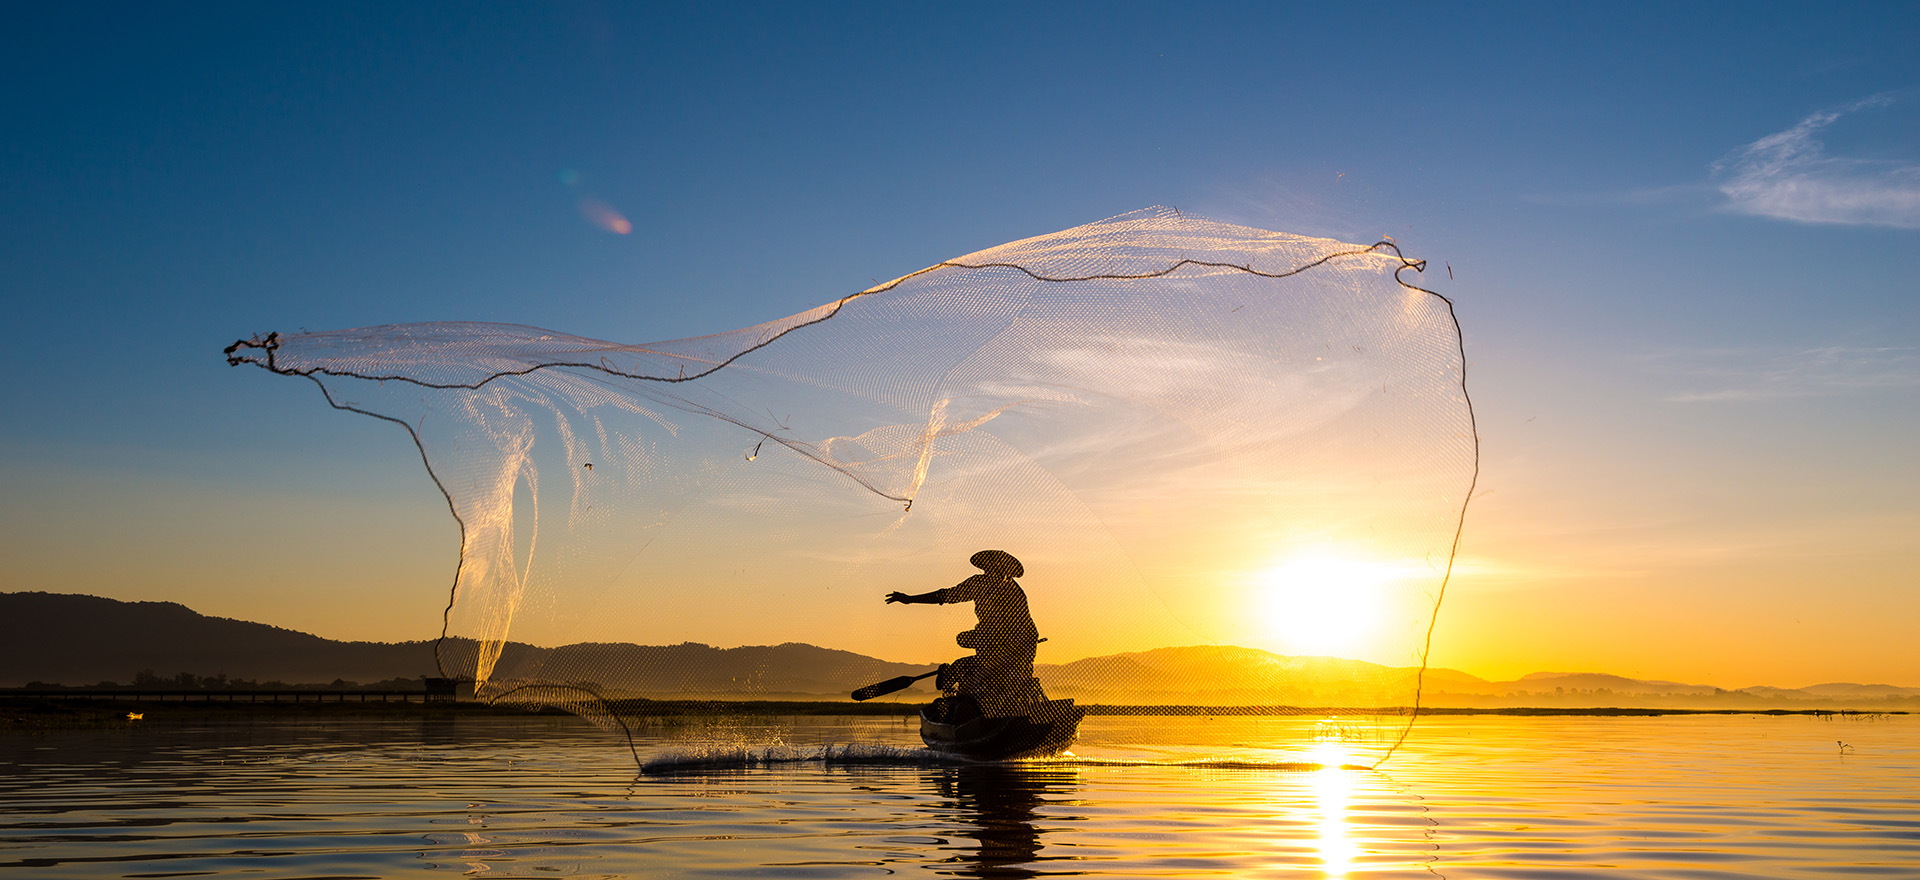 Fisherman with large fishing net on river